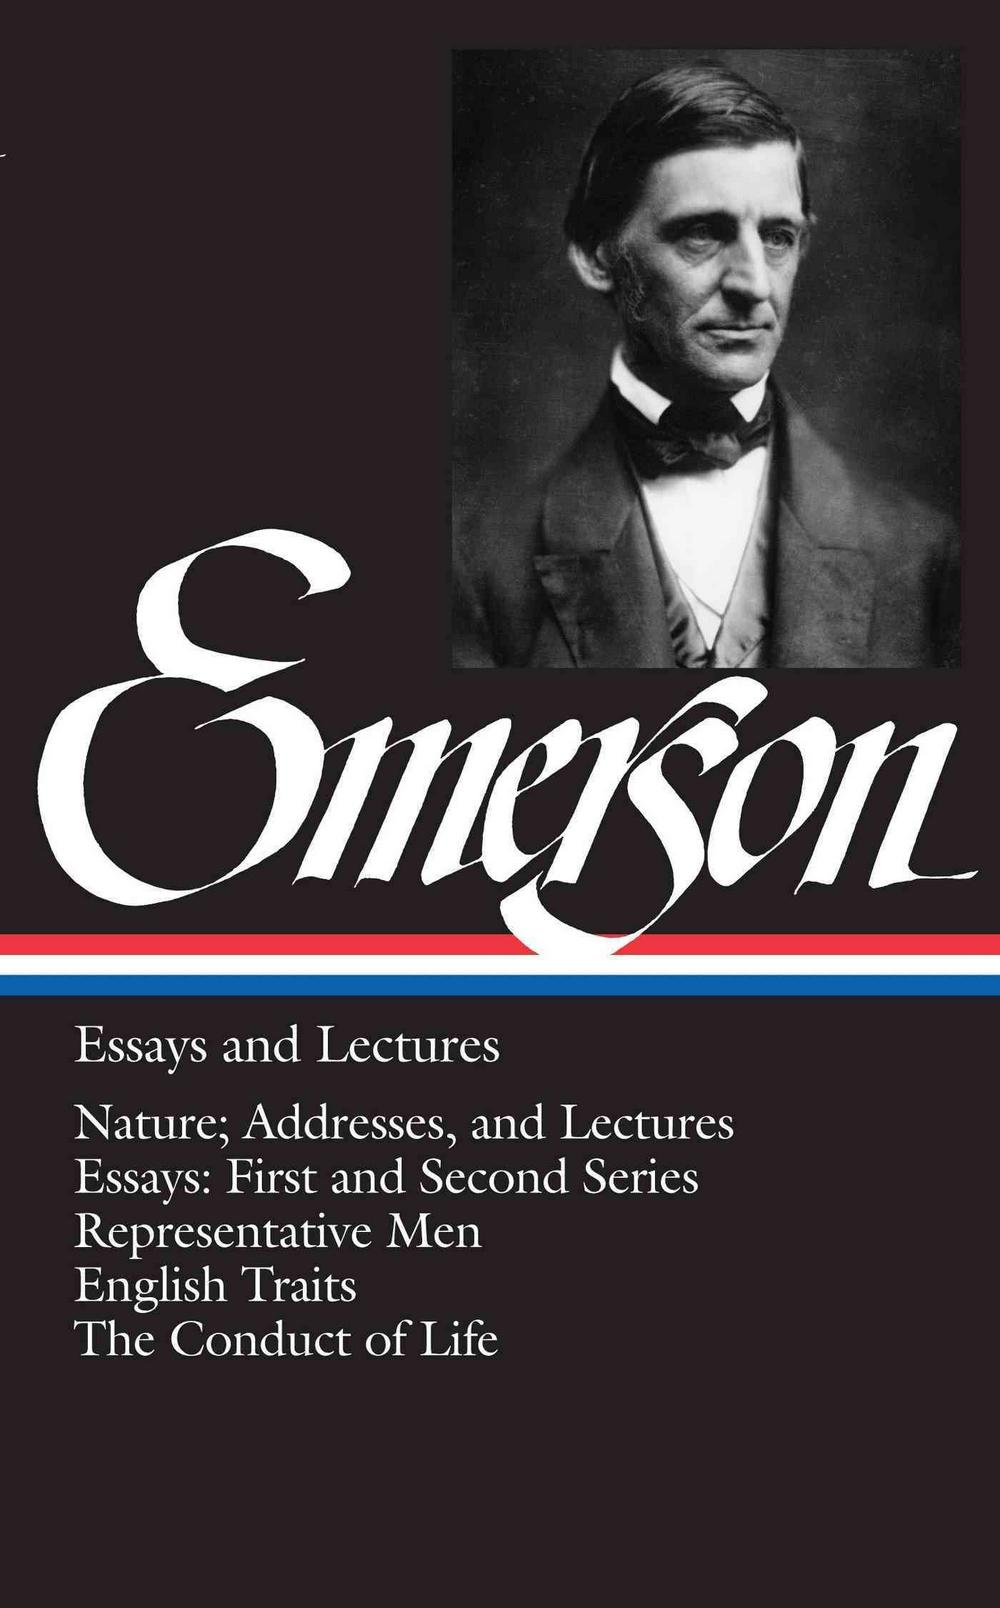 Ralph Waldo Emerson Essays and Lectures